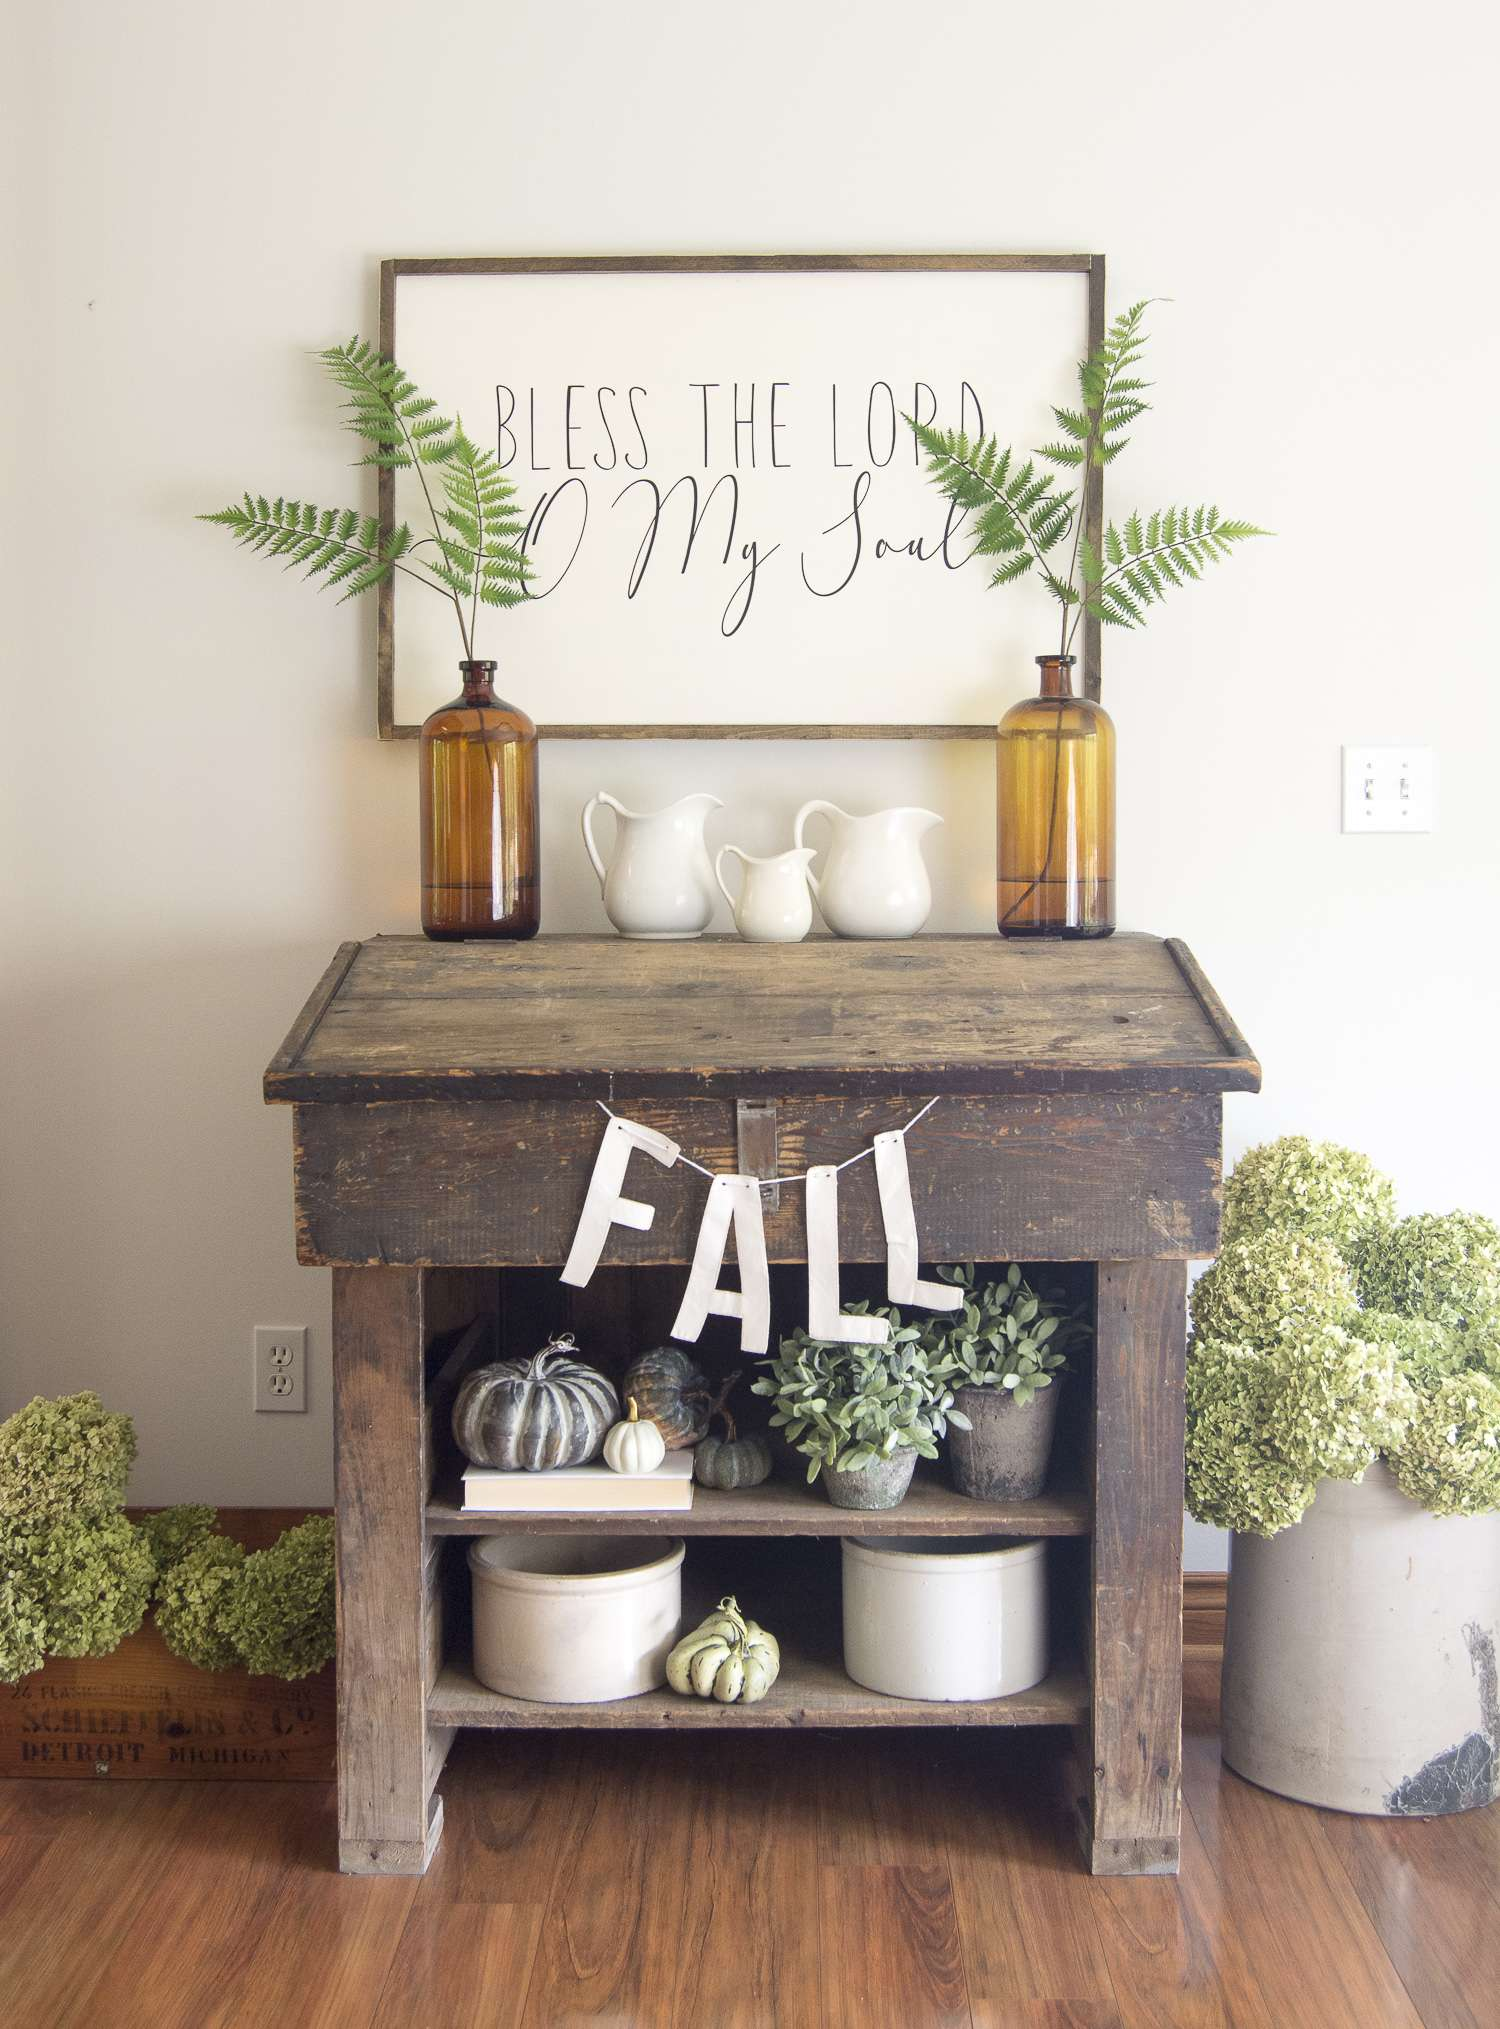 Cozy fall decor is a lovely way to usher in autumn! Read more to see how to use florals as a part of your fall decor, +12 inspiring fall home tours! #falldecor